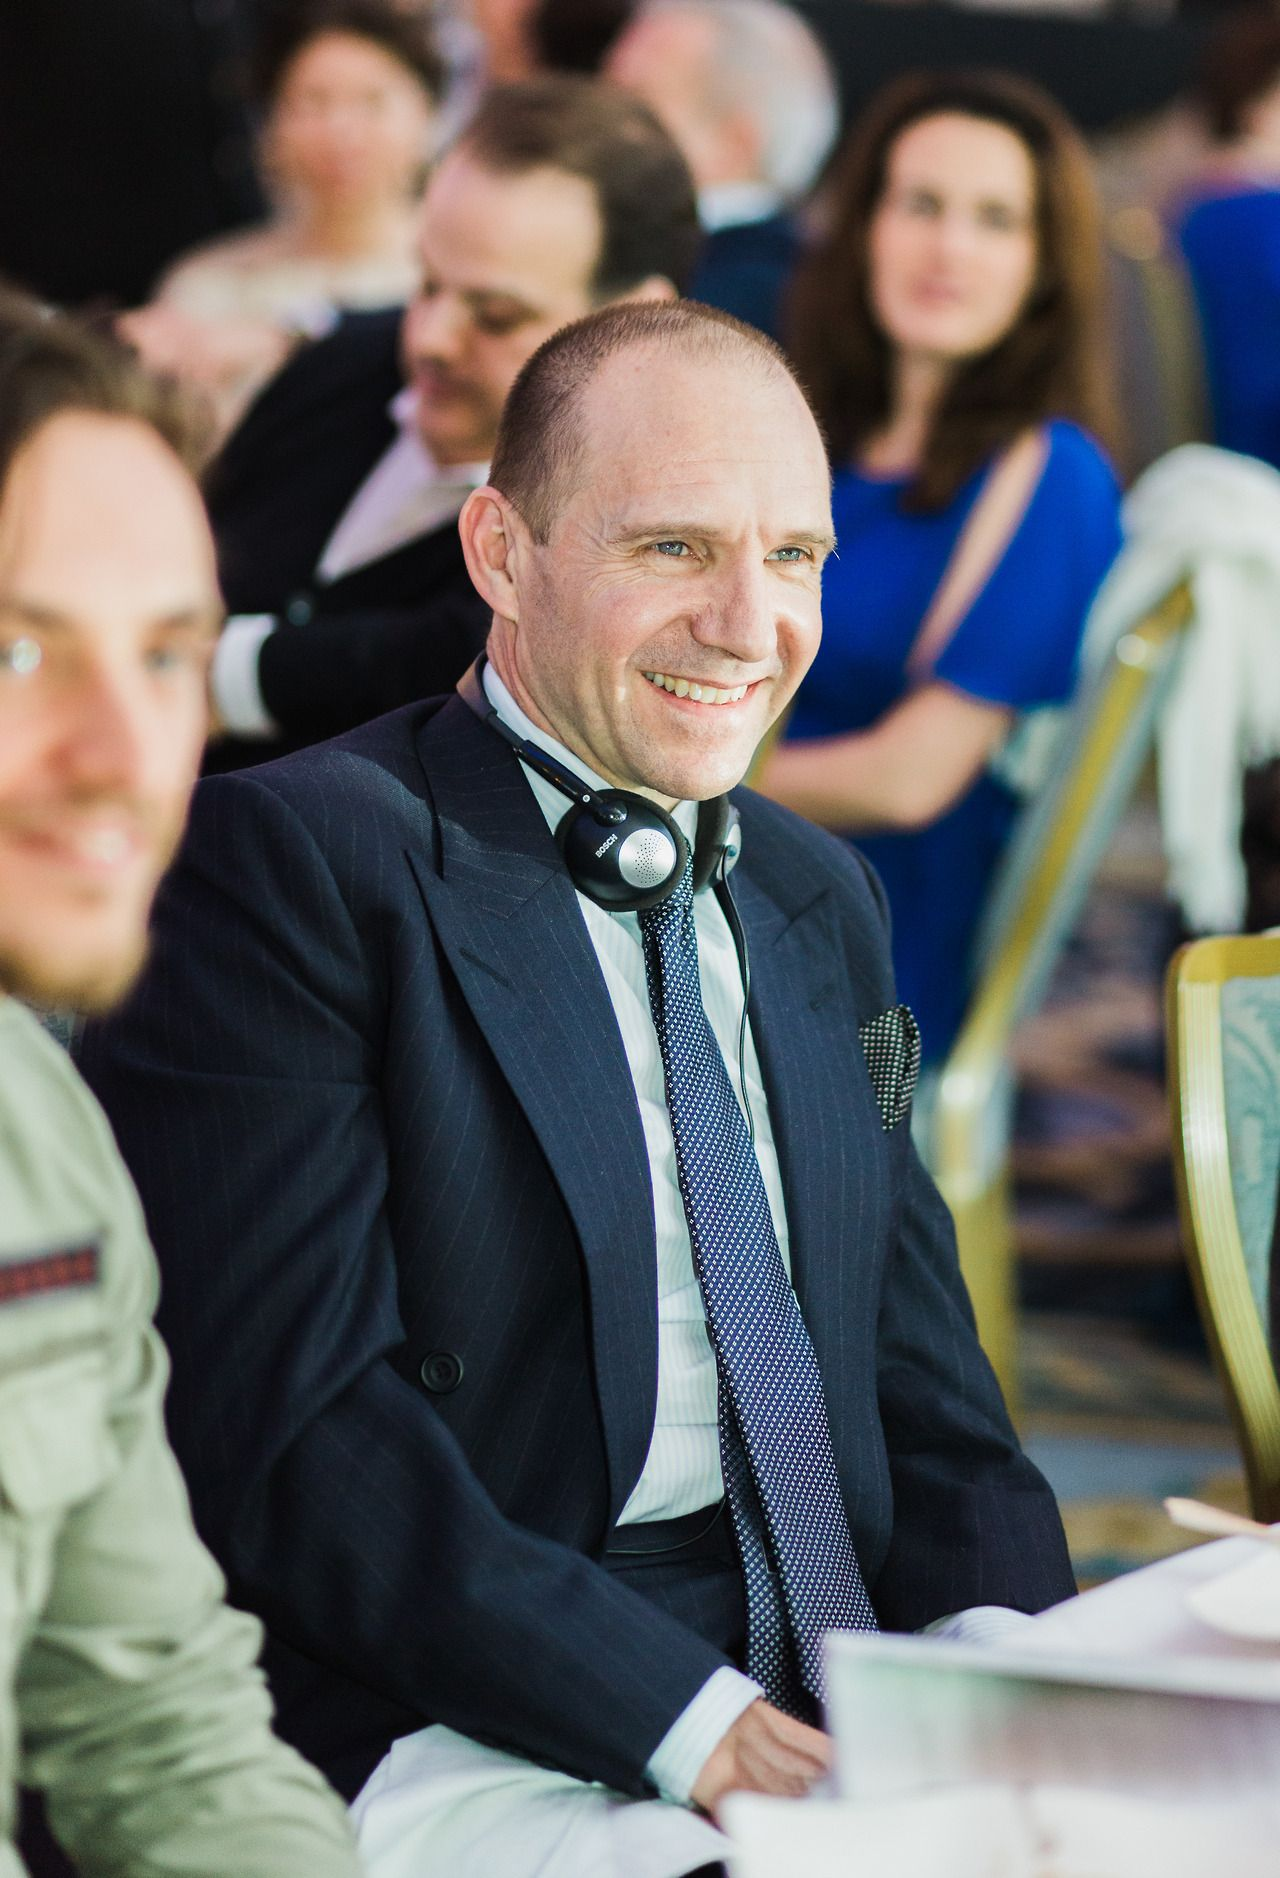 Ralph Fiennes attending the Russia old new year charity